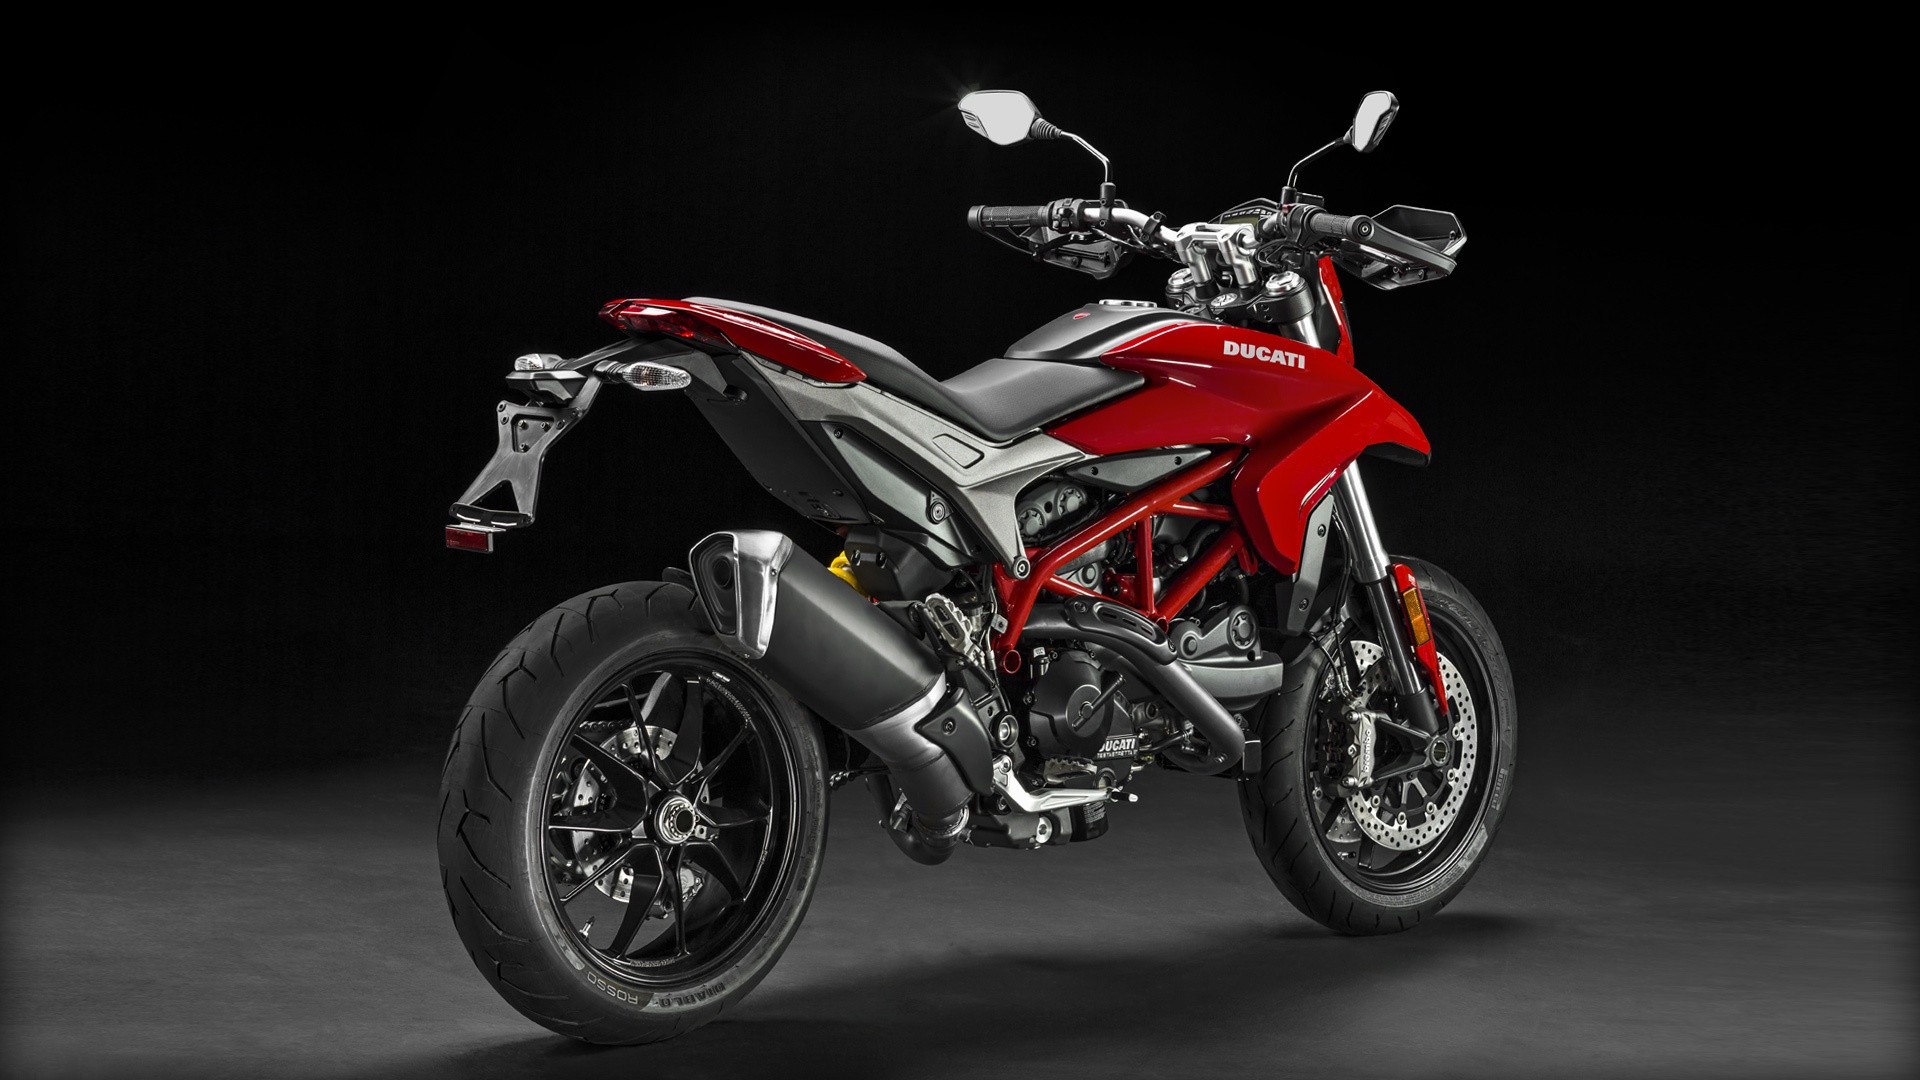 Hypermotard-939_2016_Studio_R_D01_1920x1080.mediagallery_output_image_[1920×1080]